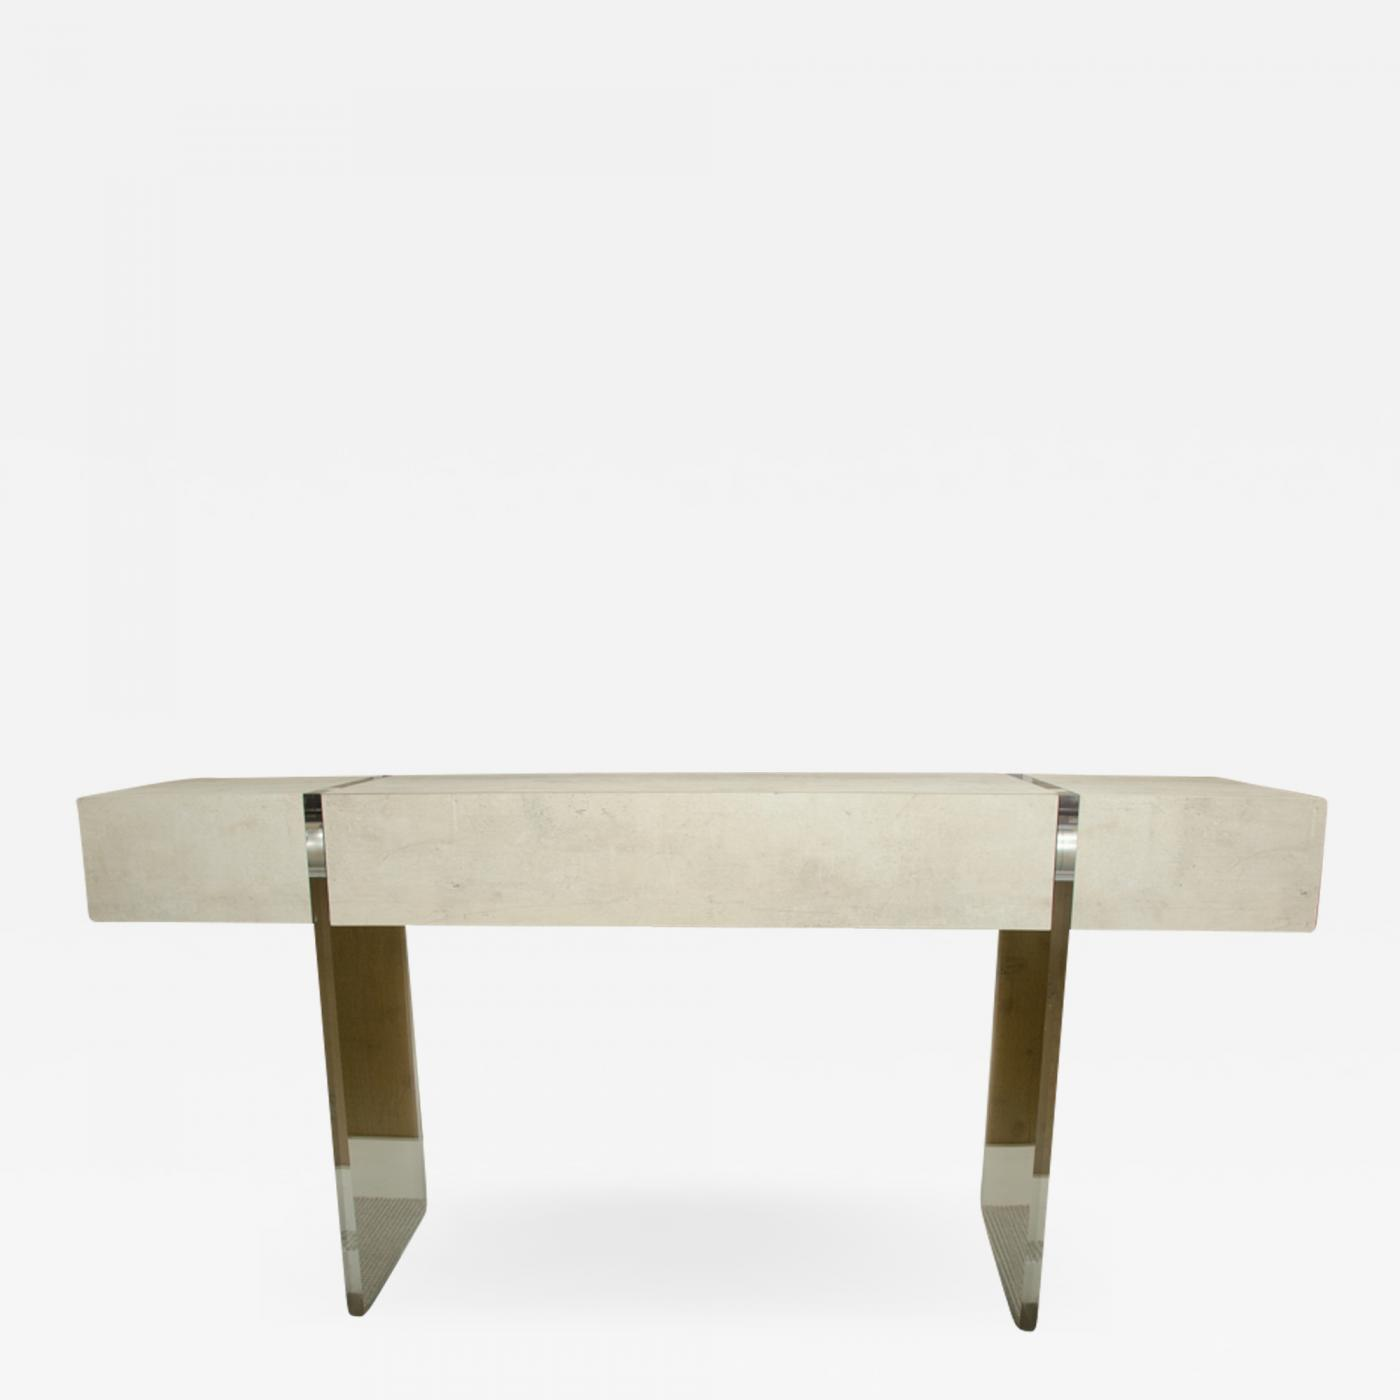 Very Attractive Console With Large Center Drawer And Lucite Legs